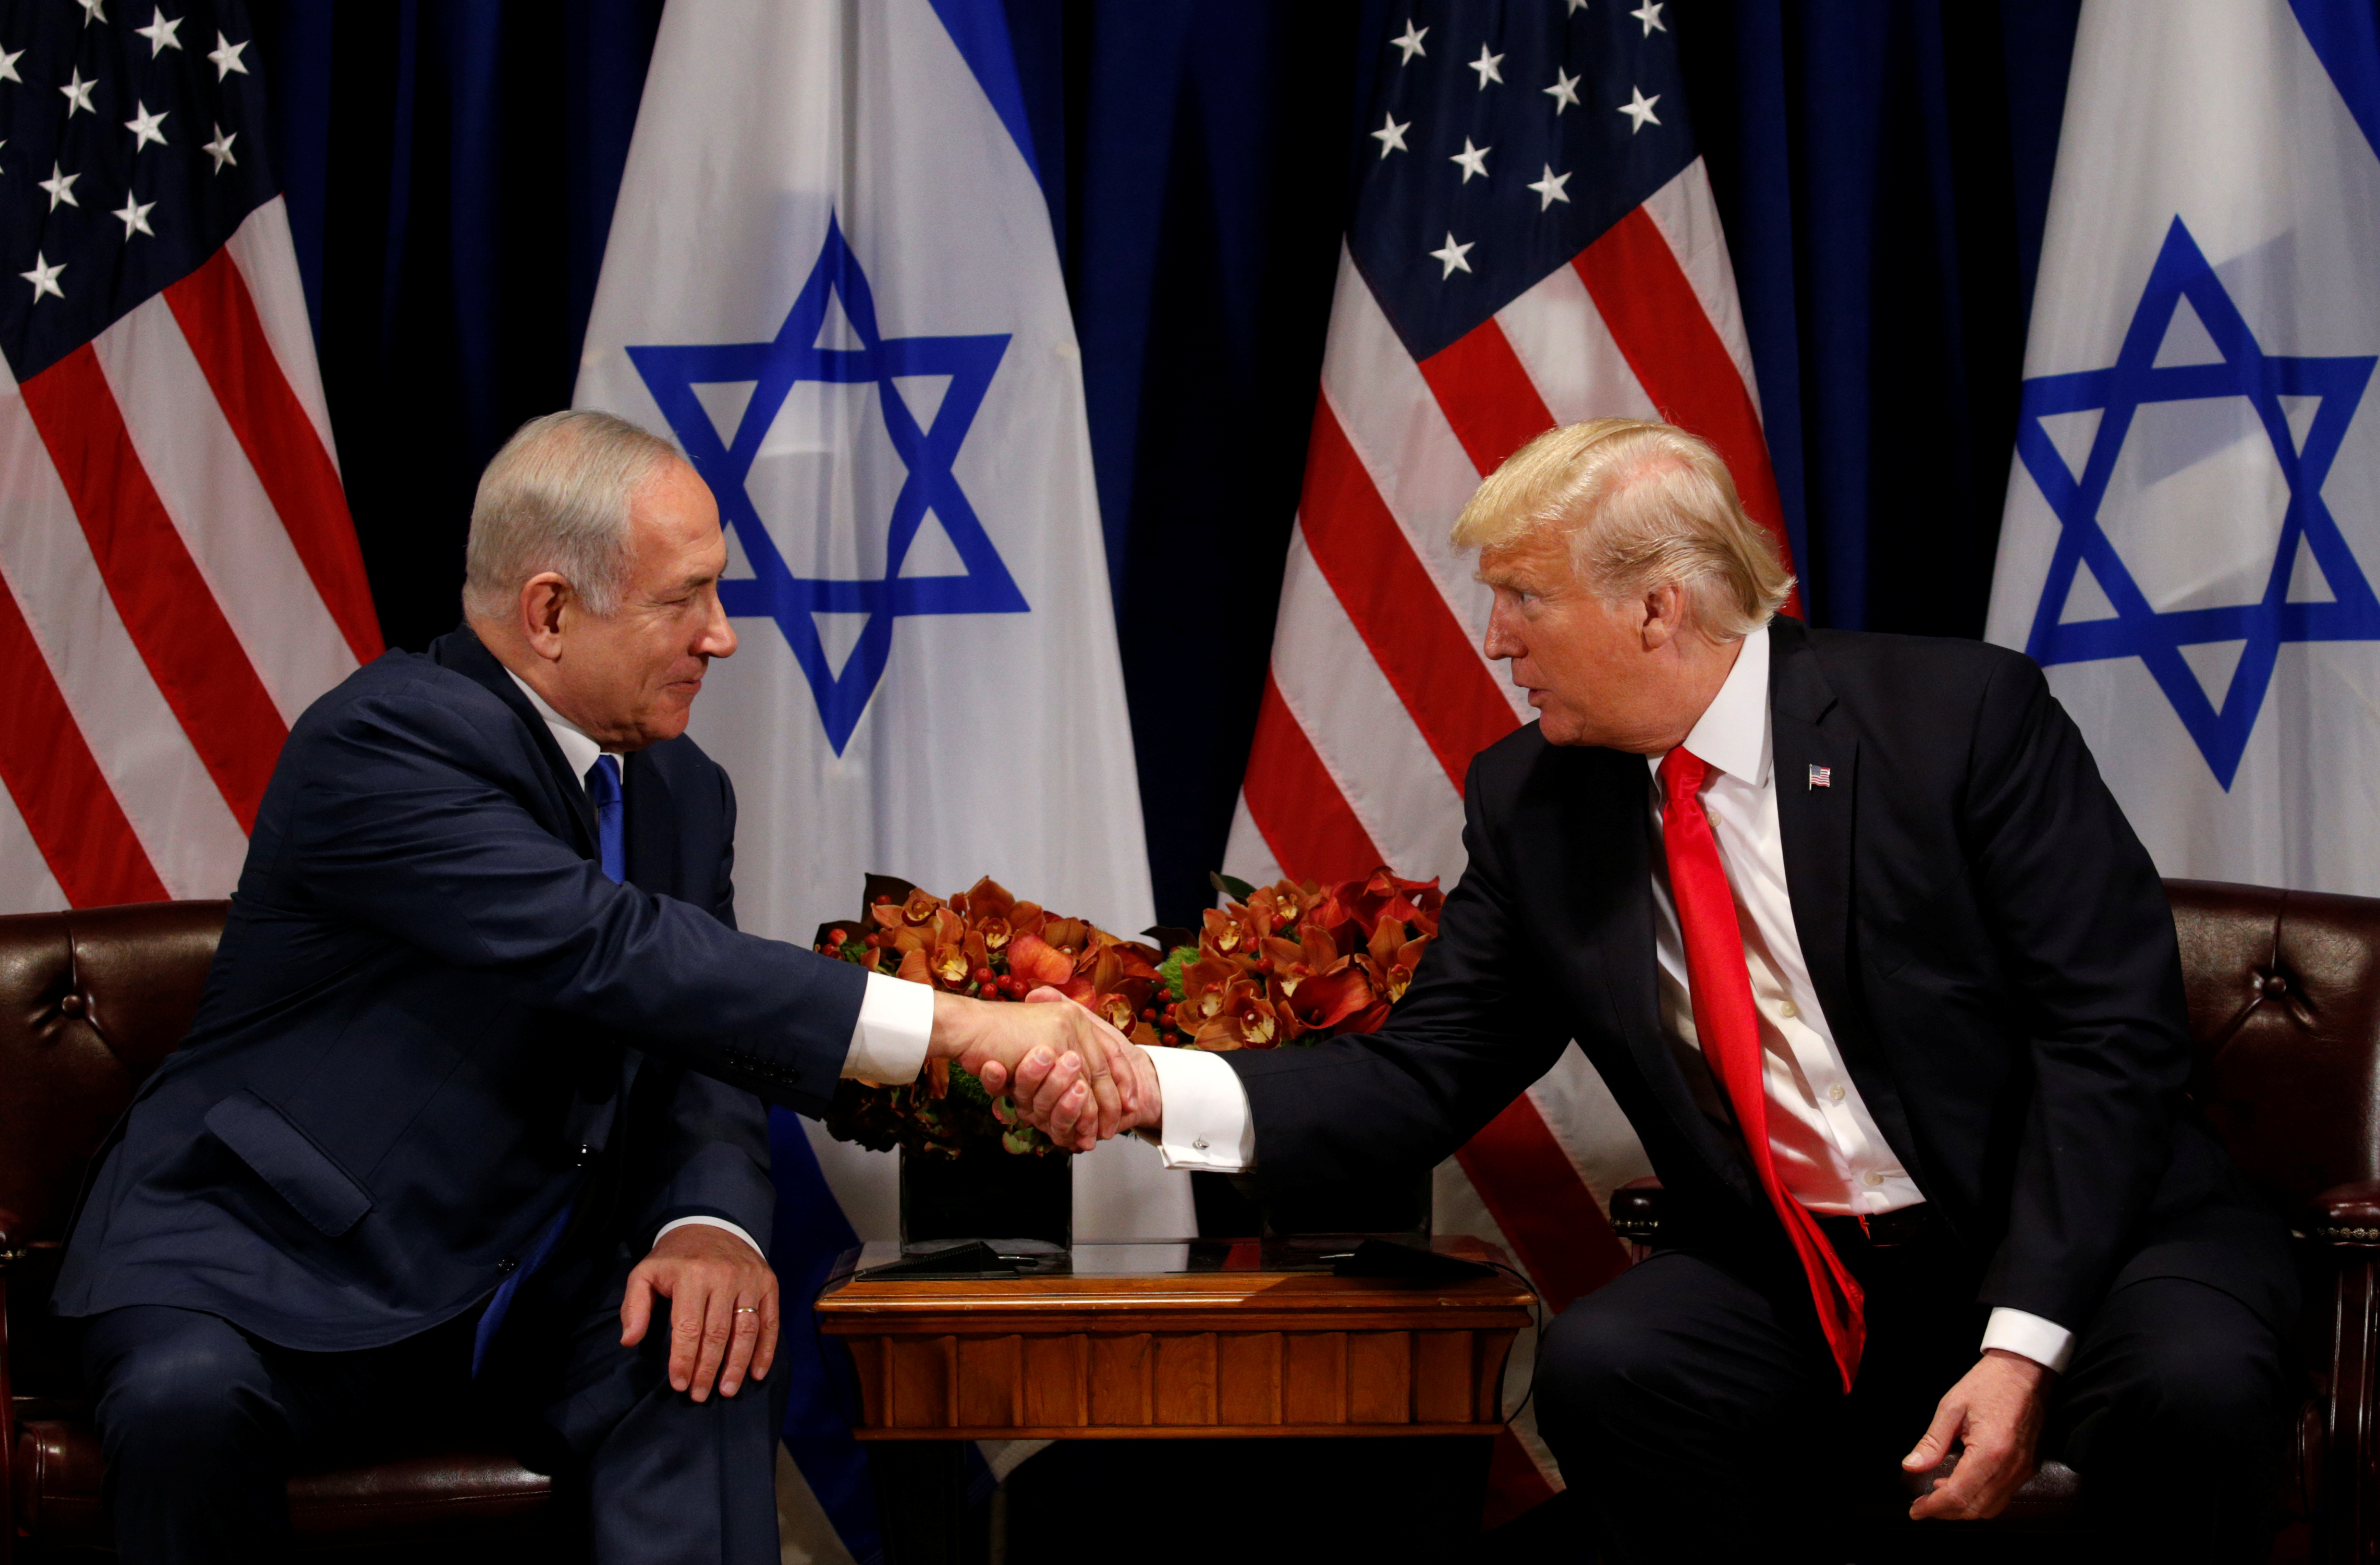 President Trump recognizes Jerusalem as the capital of Israel